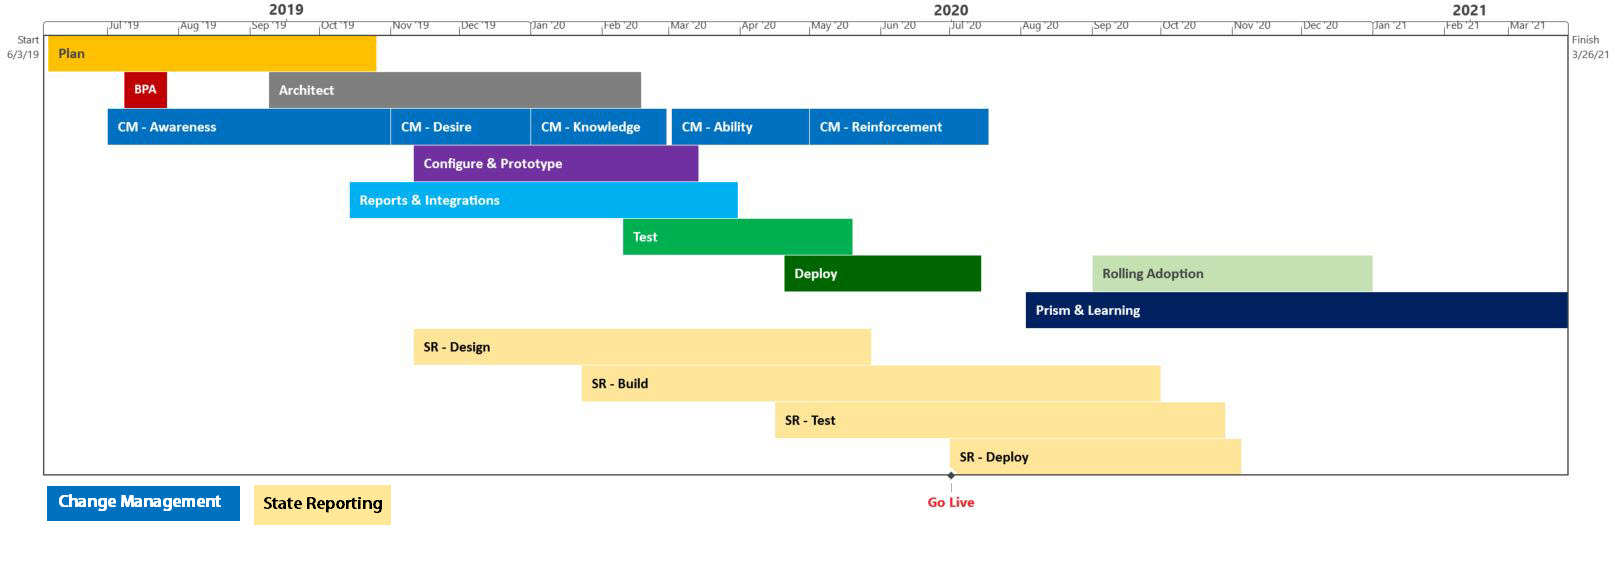 Workday Project Timeline